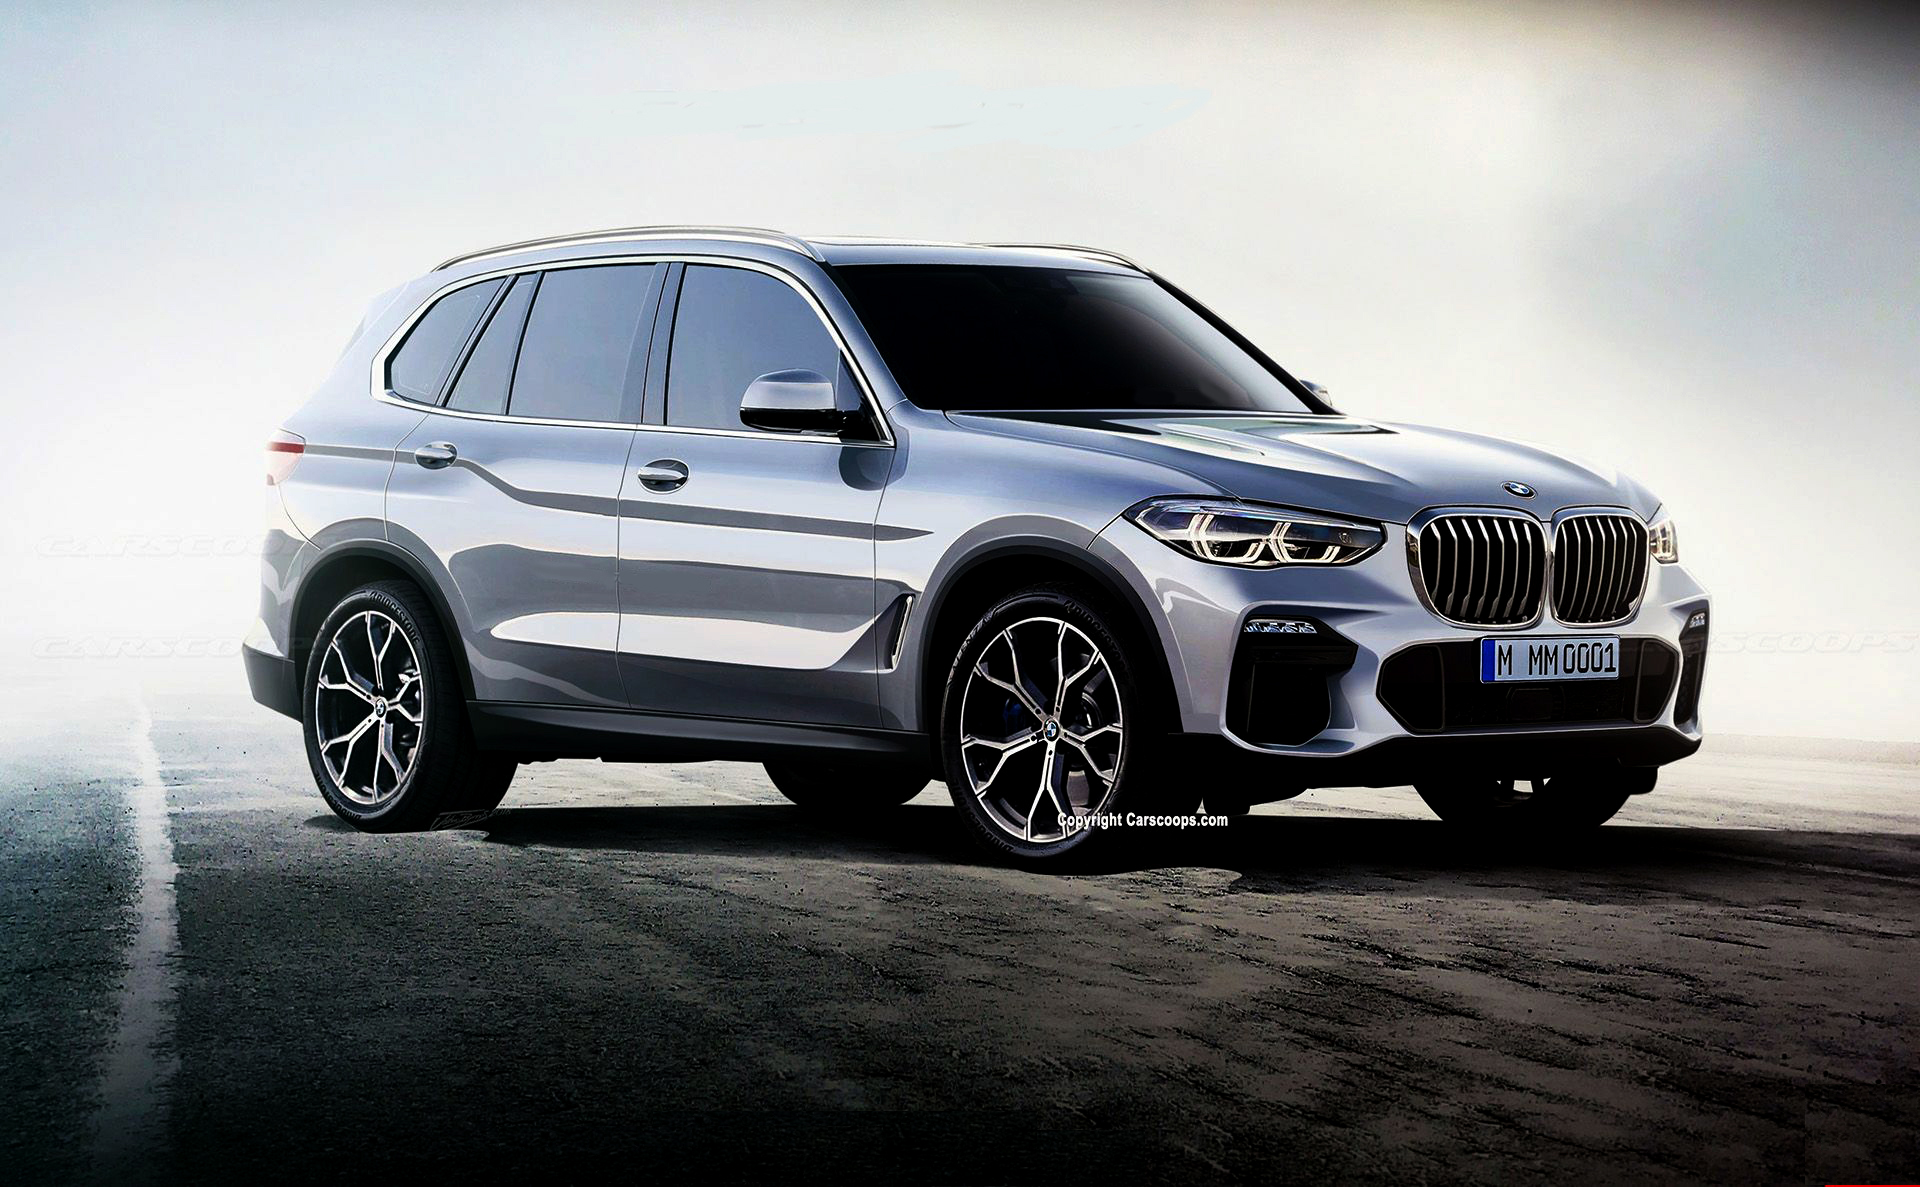 2019-BMW-X5-Carscoops-1